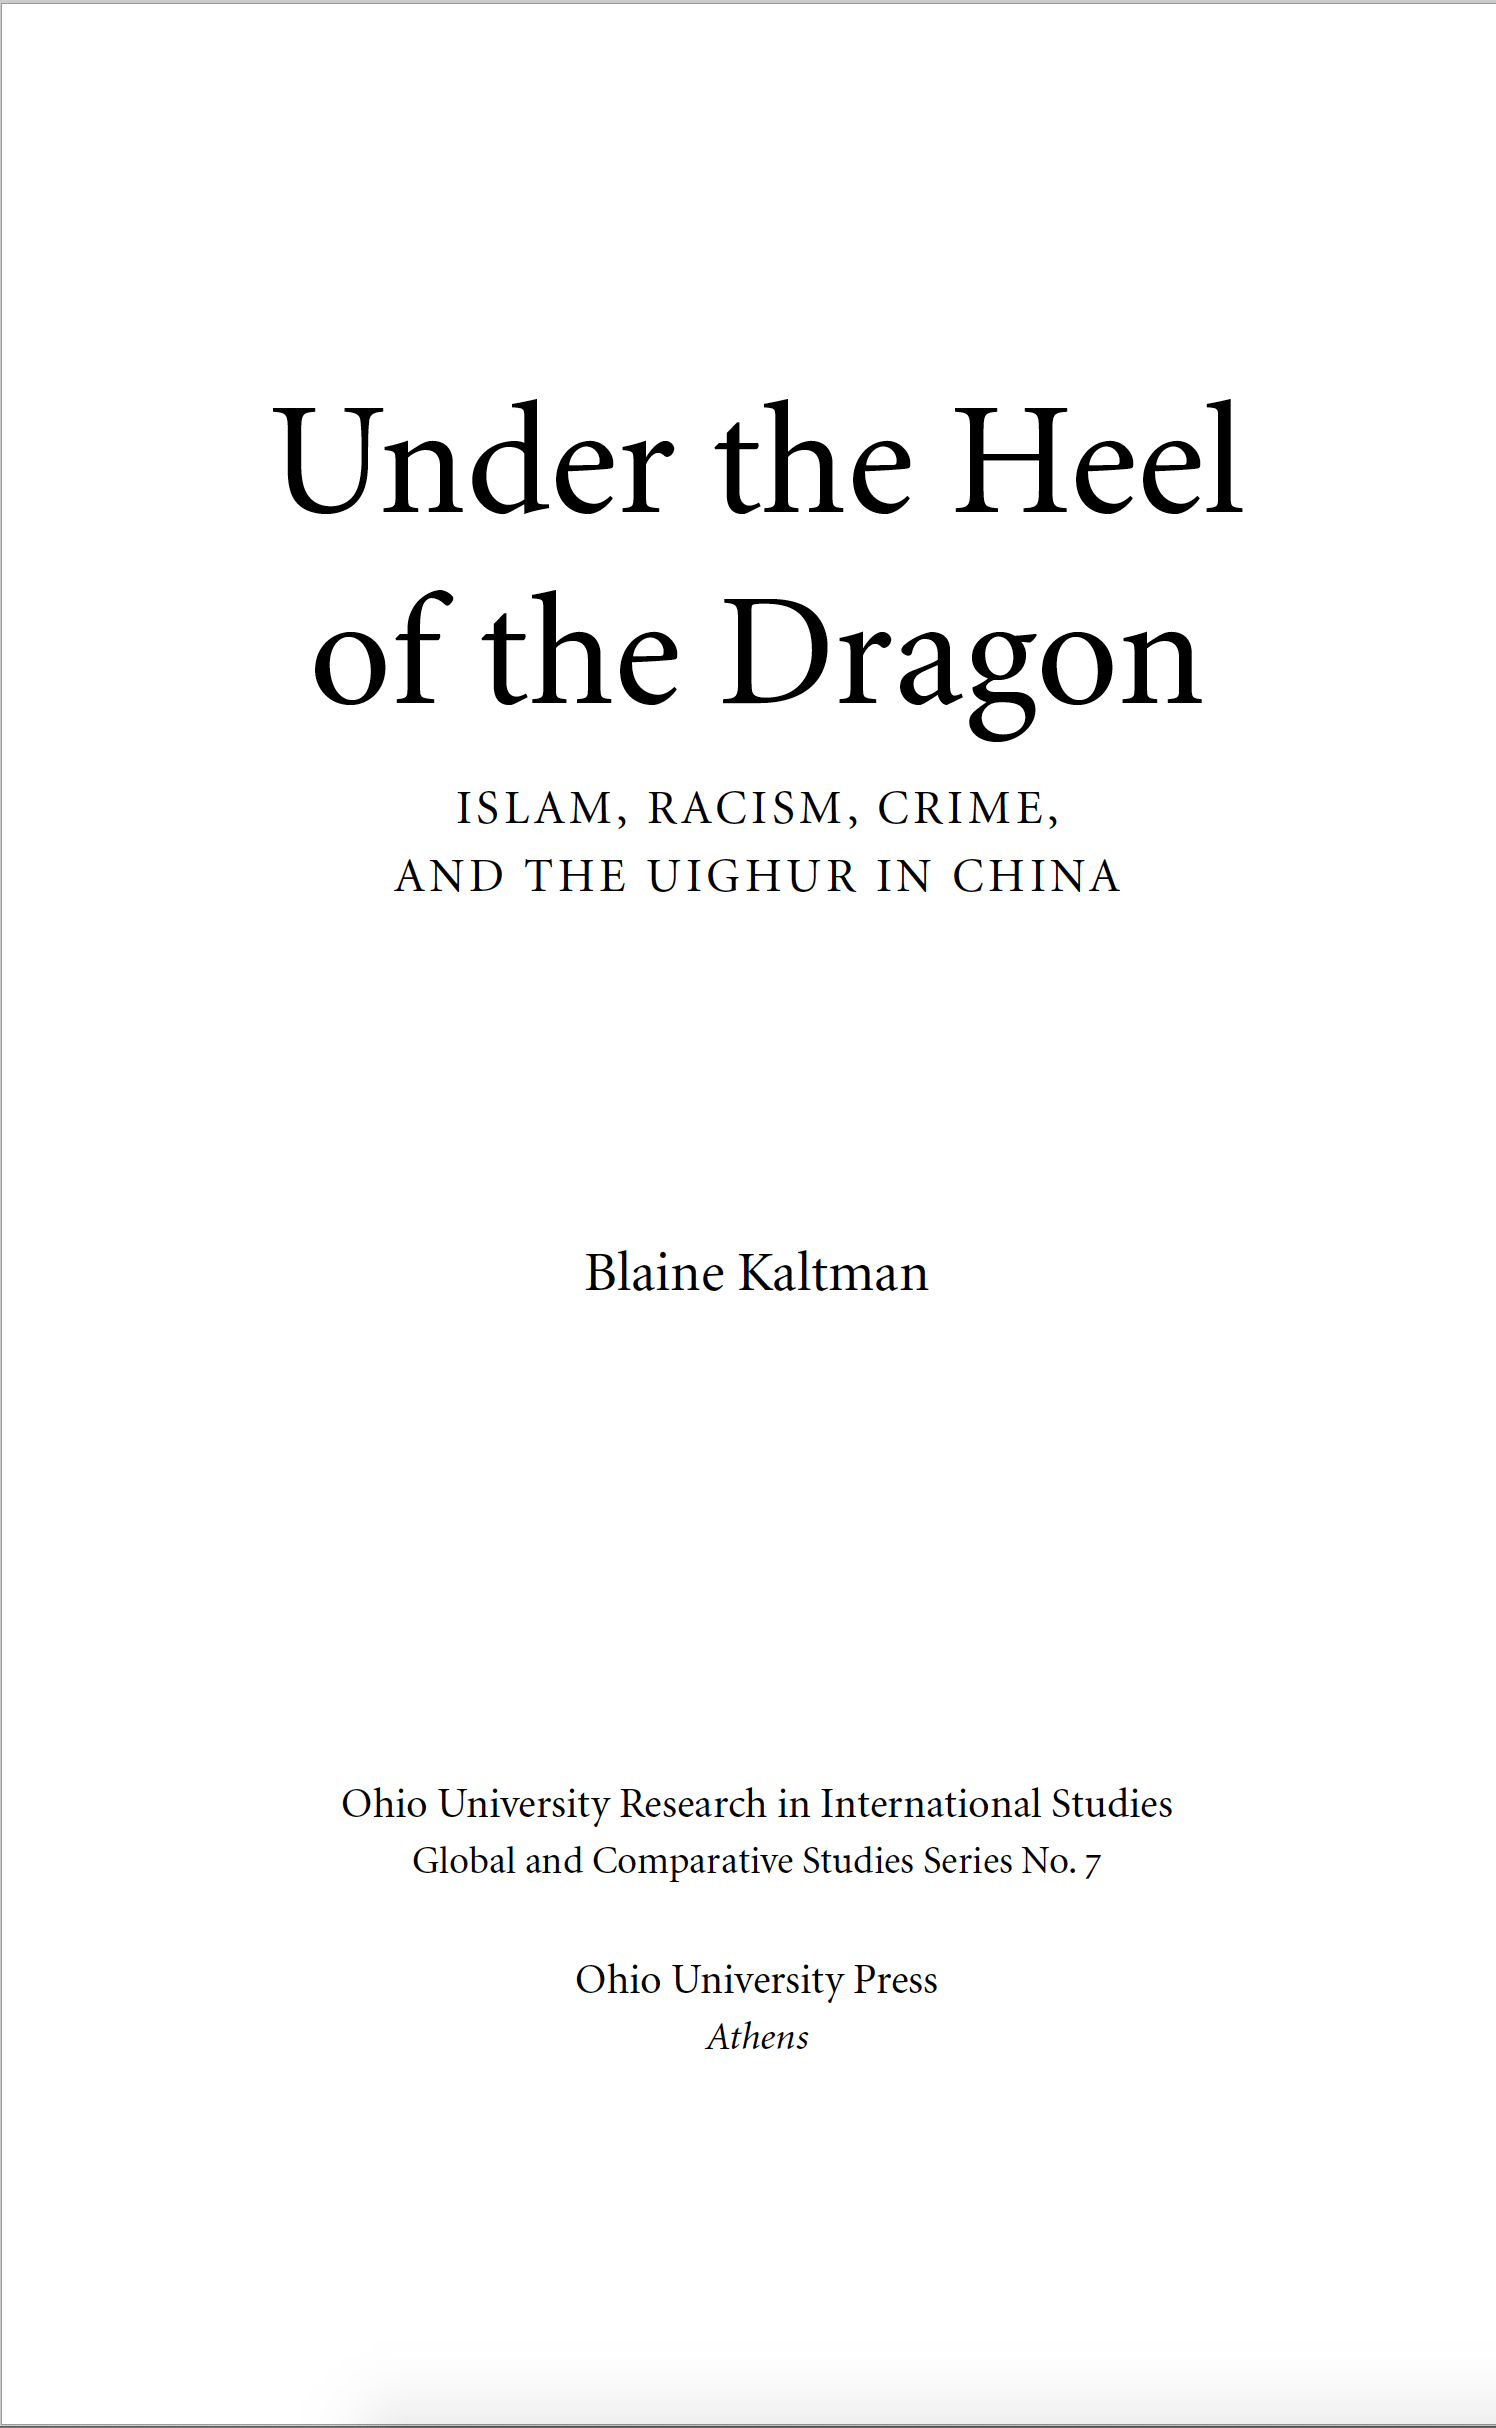 Under the Heel of the Dragon: Islam, Racism, Crime, and the Uighur in China, ئېلكىتاب تورى